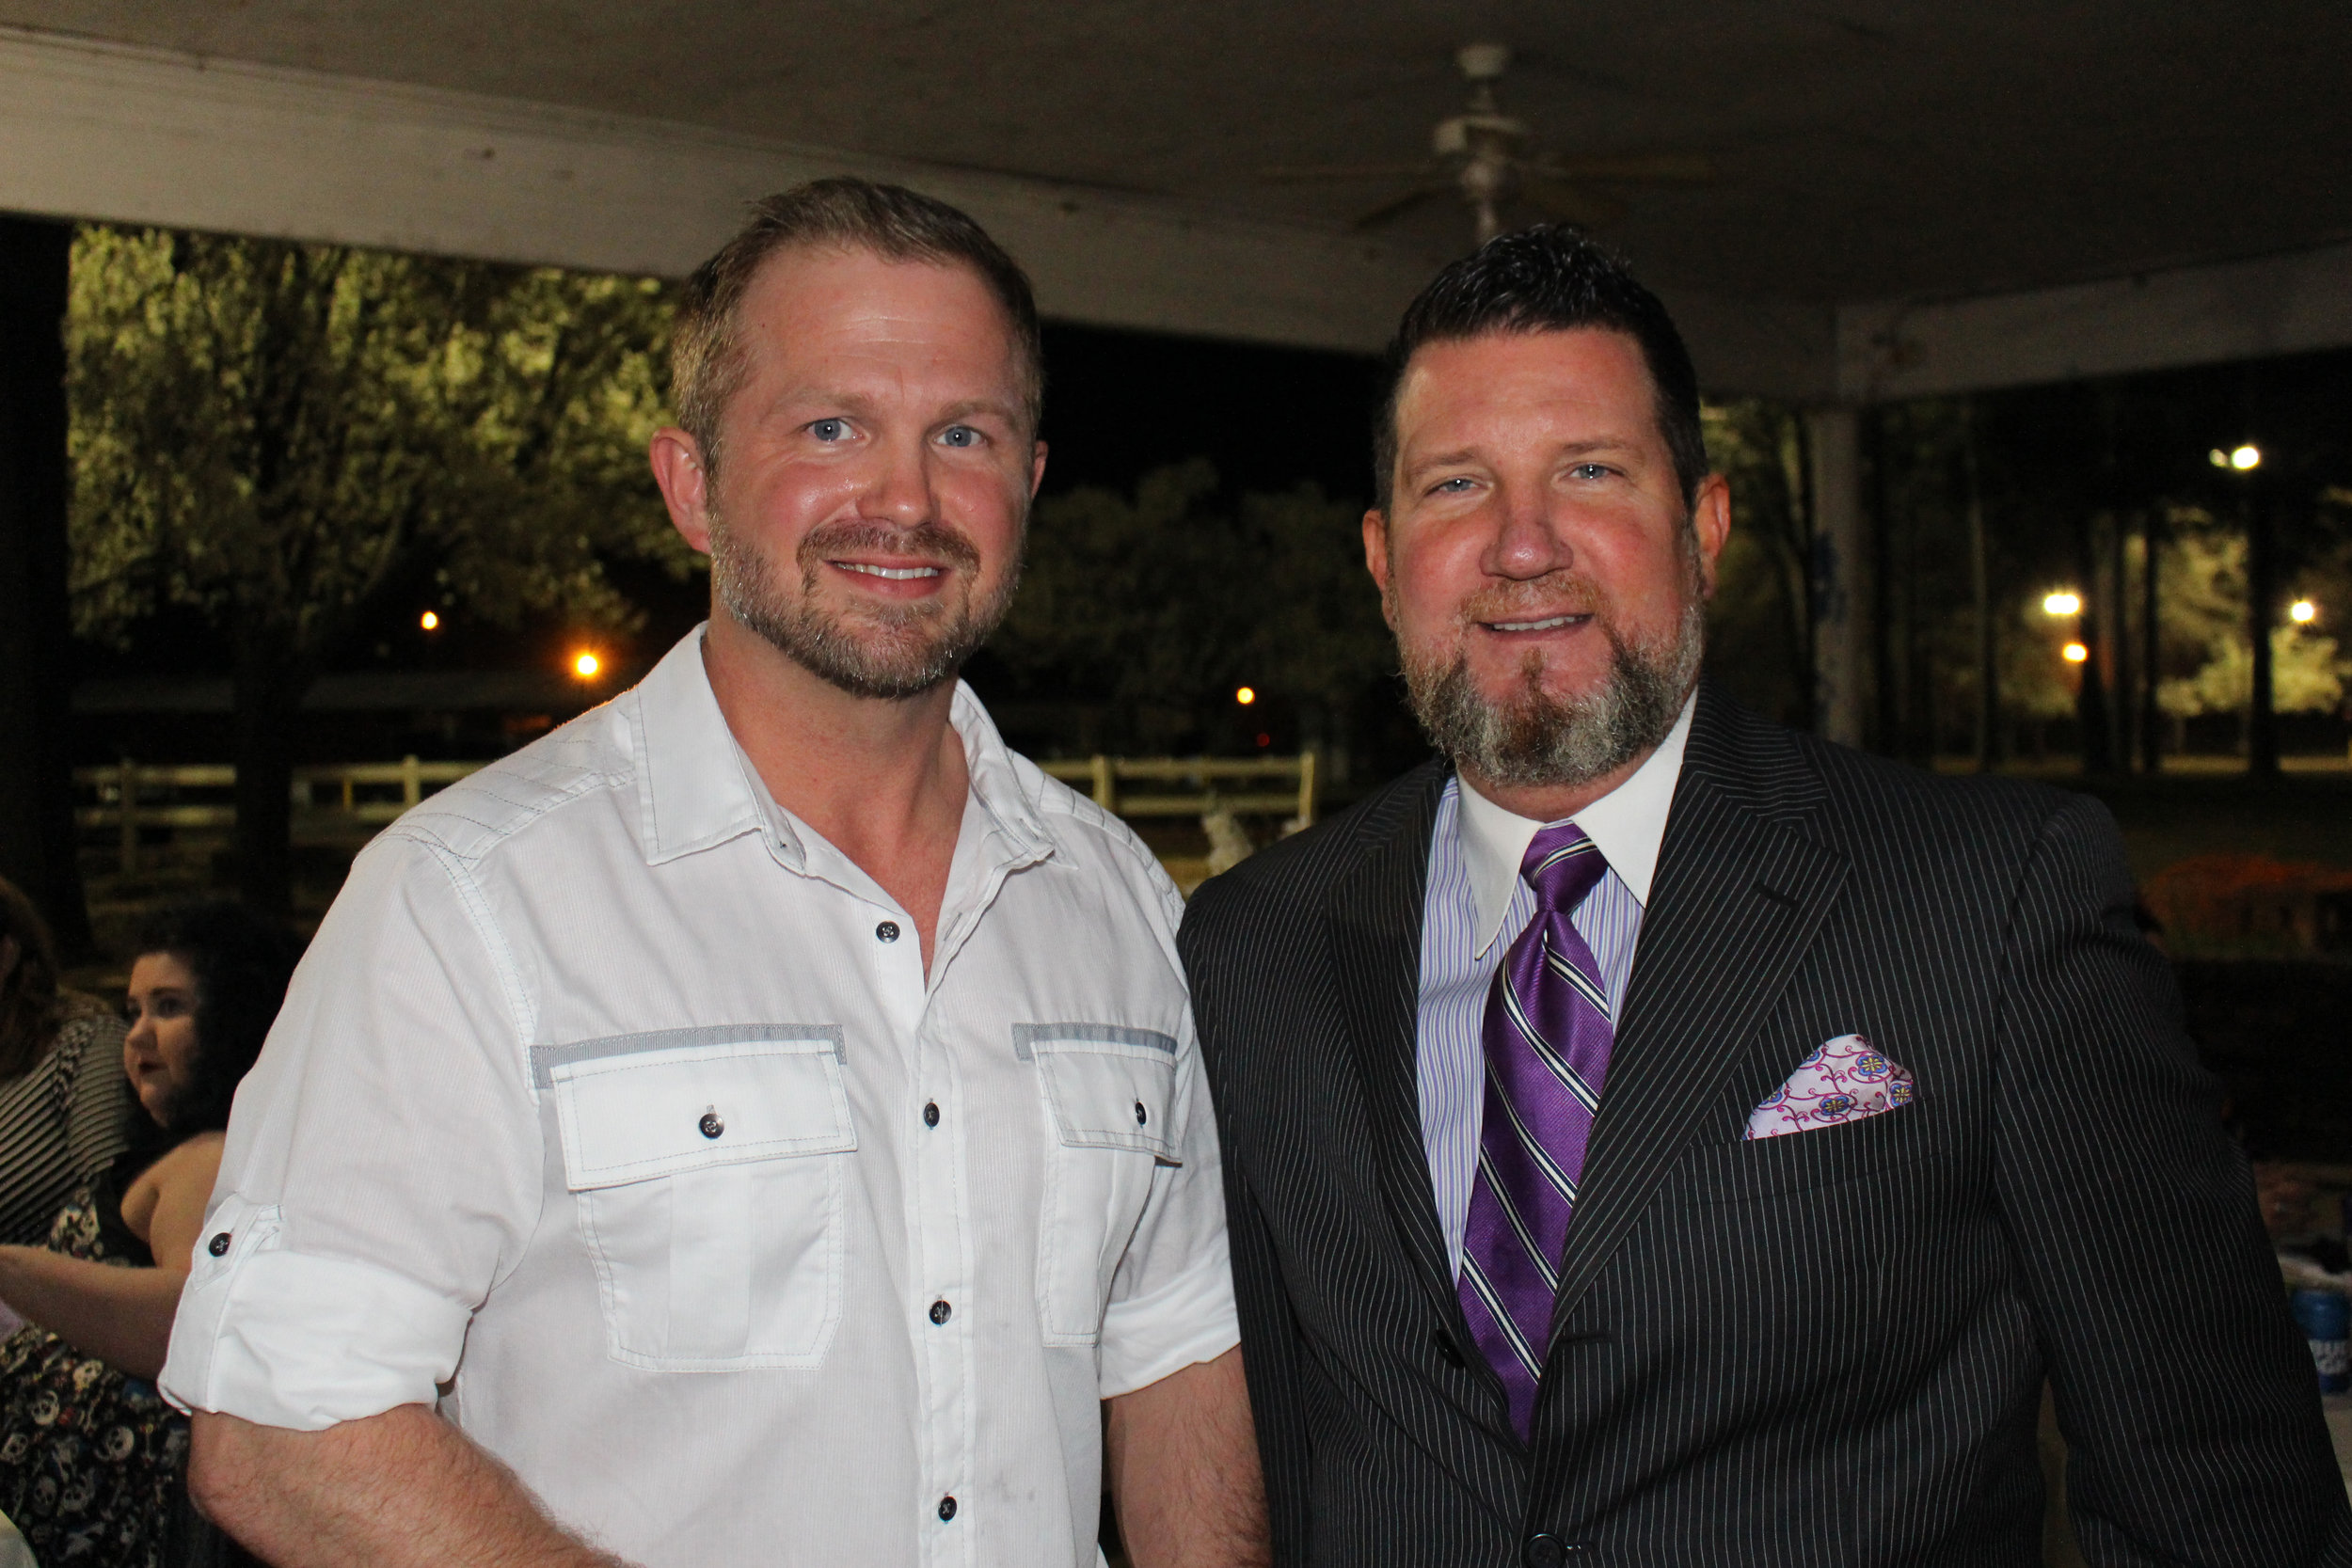 Jimmy Cockrum and Jay Hall